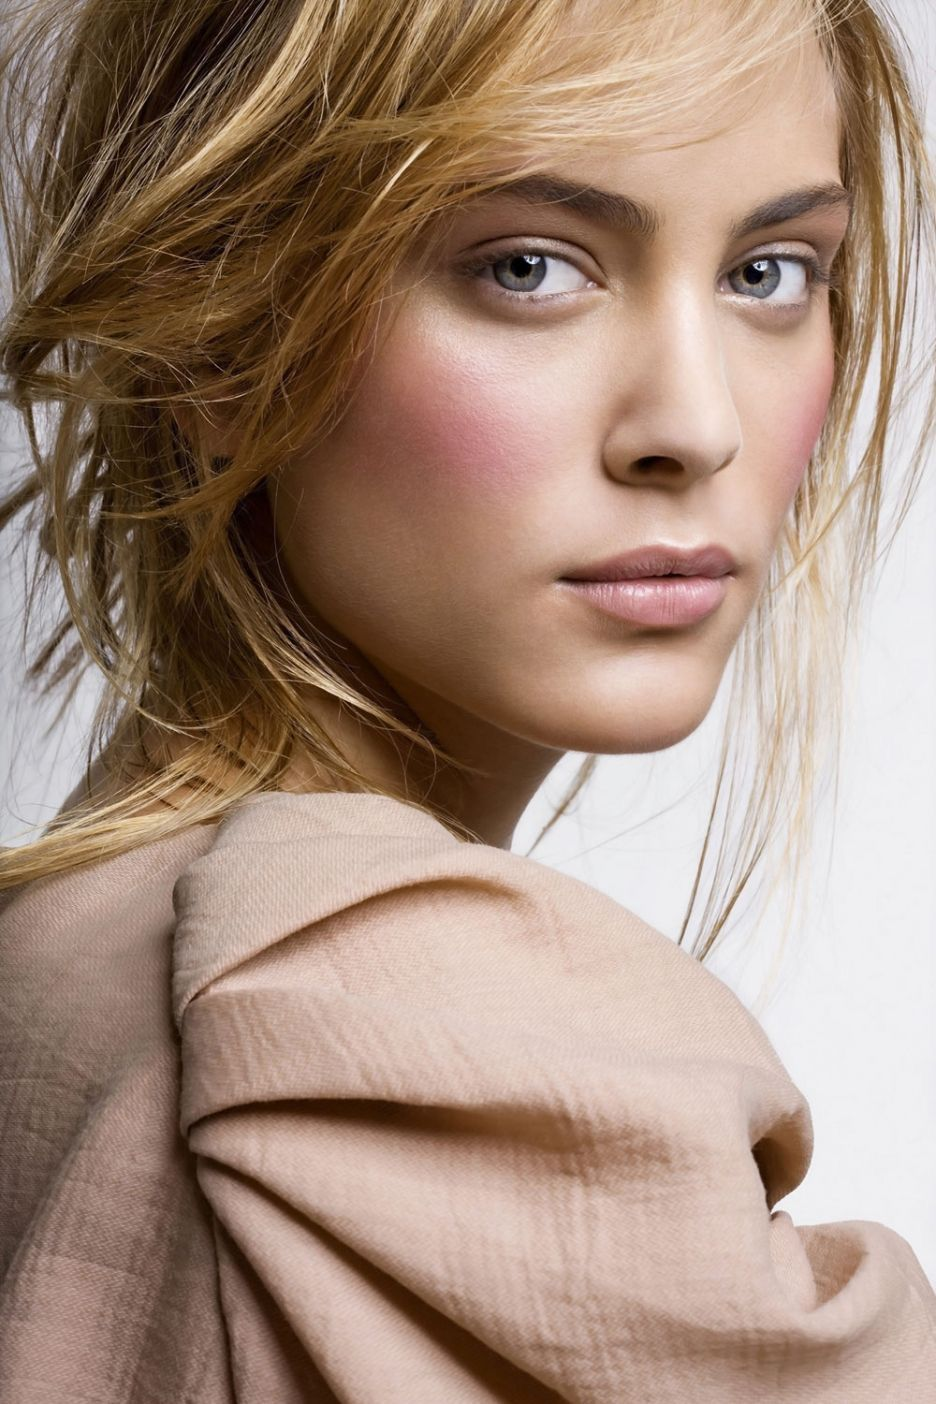 Pin By Aaron Jones On Awesome Visual Day Makeup Looks Makeup Looks Wedding Makeup Looks